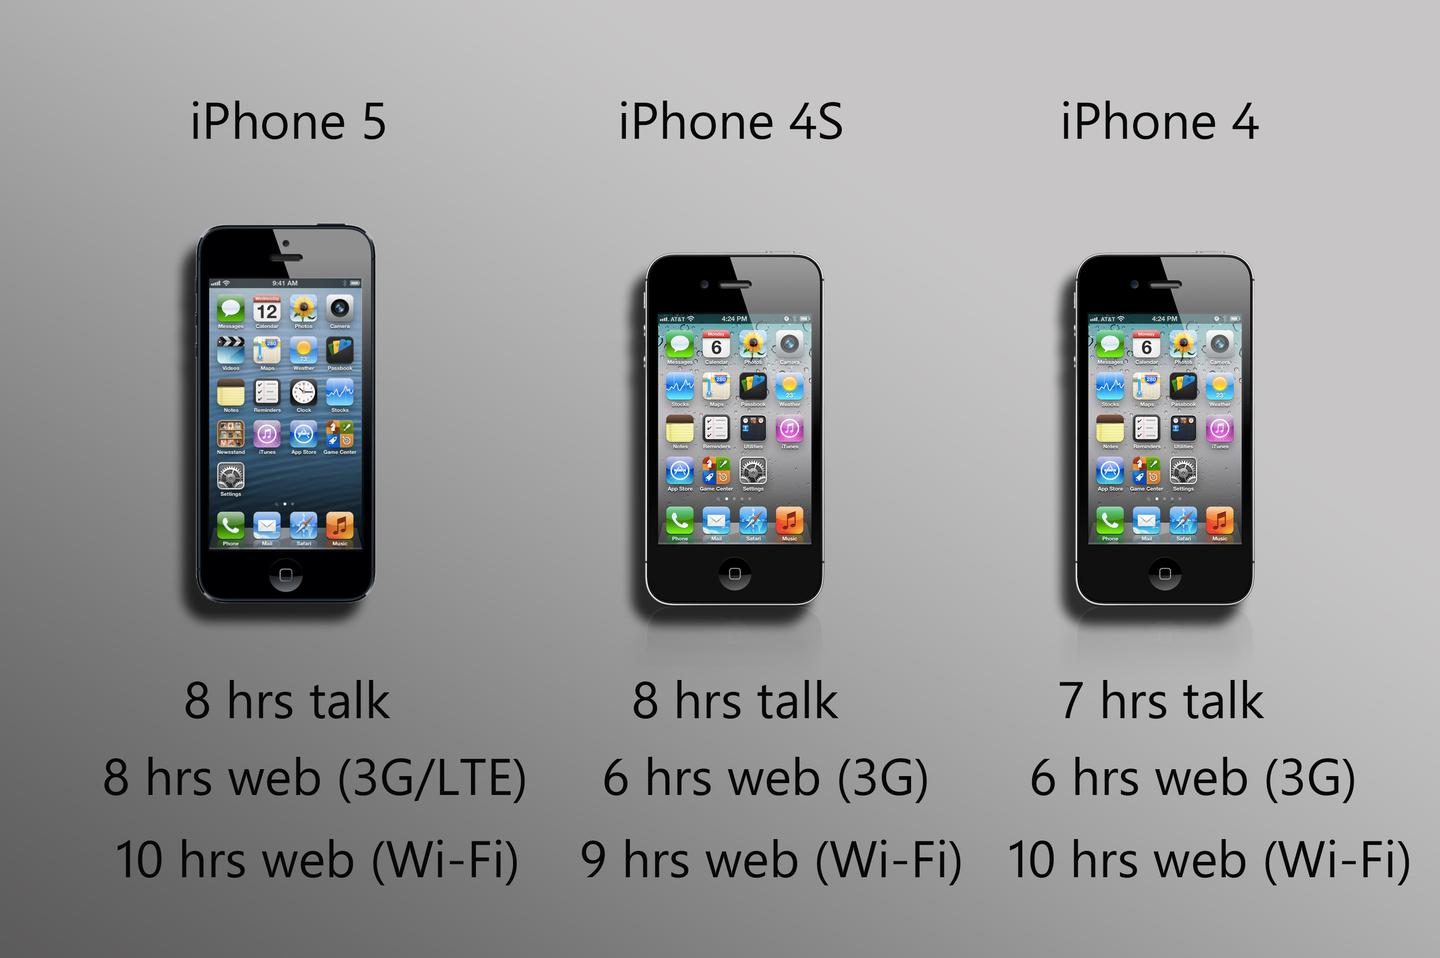 Battery life is similar on all three models